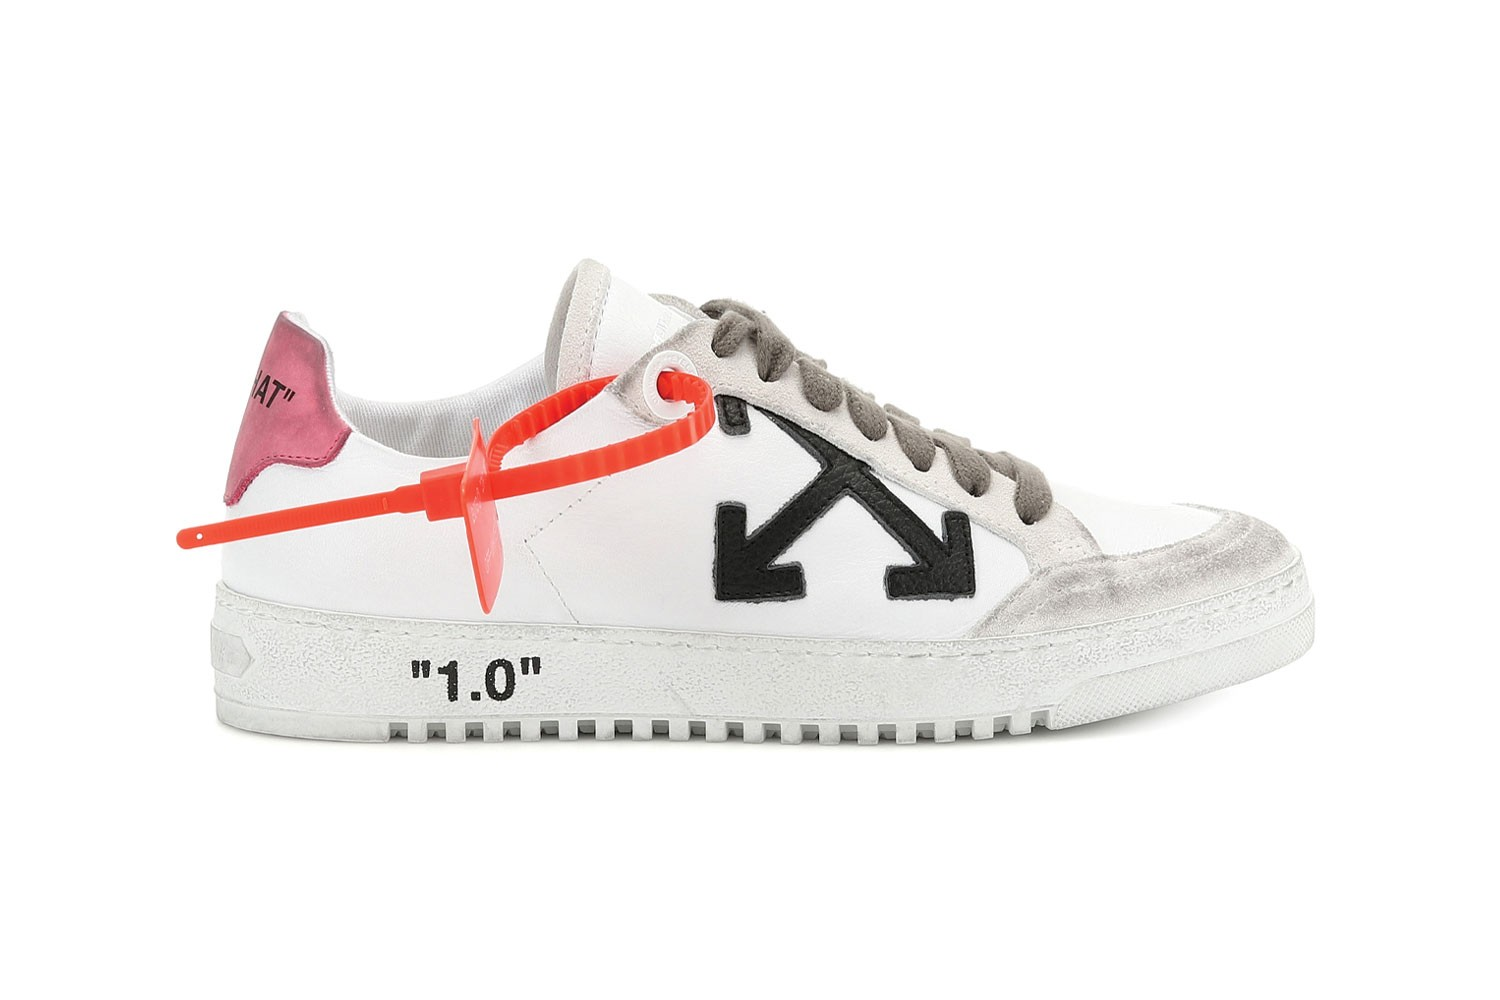 Off-White Releases Exclusive Women's